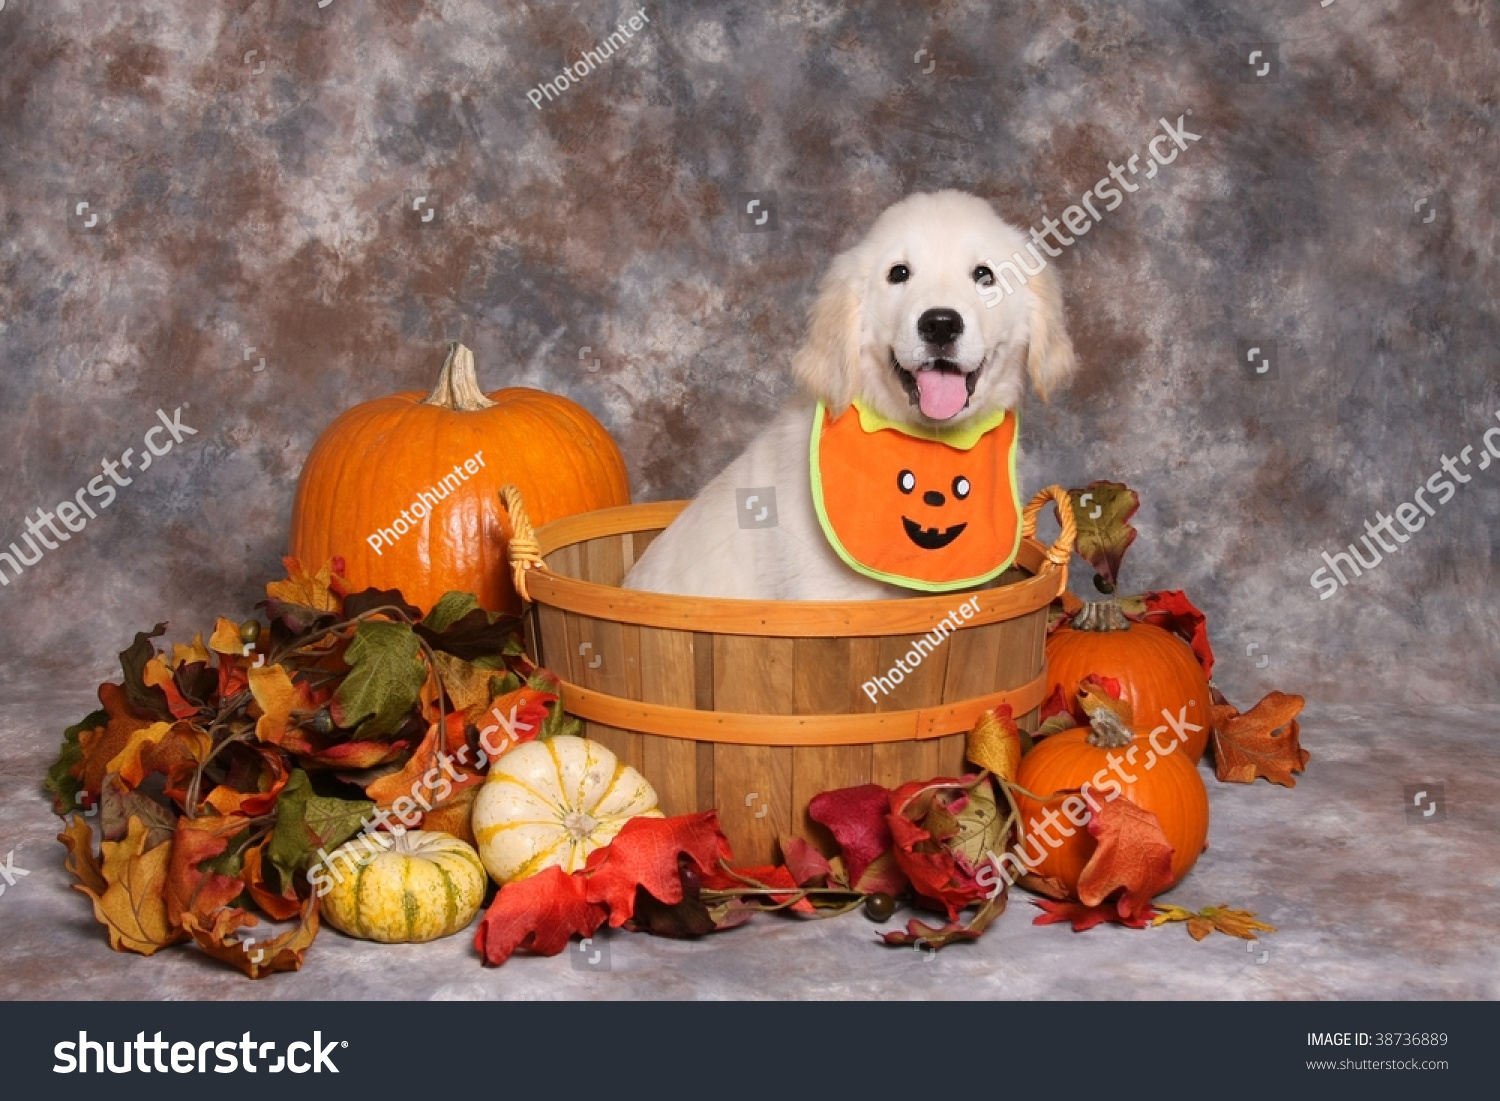 halloween golden retriever puppy